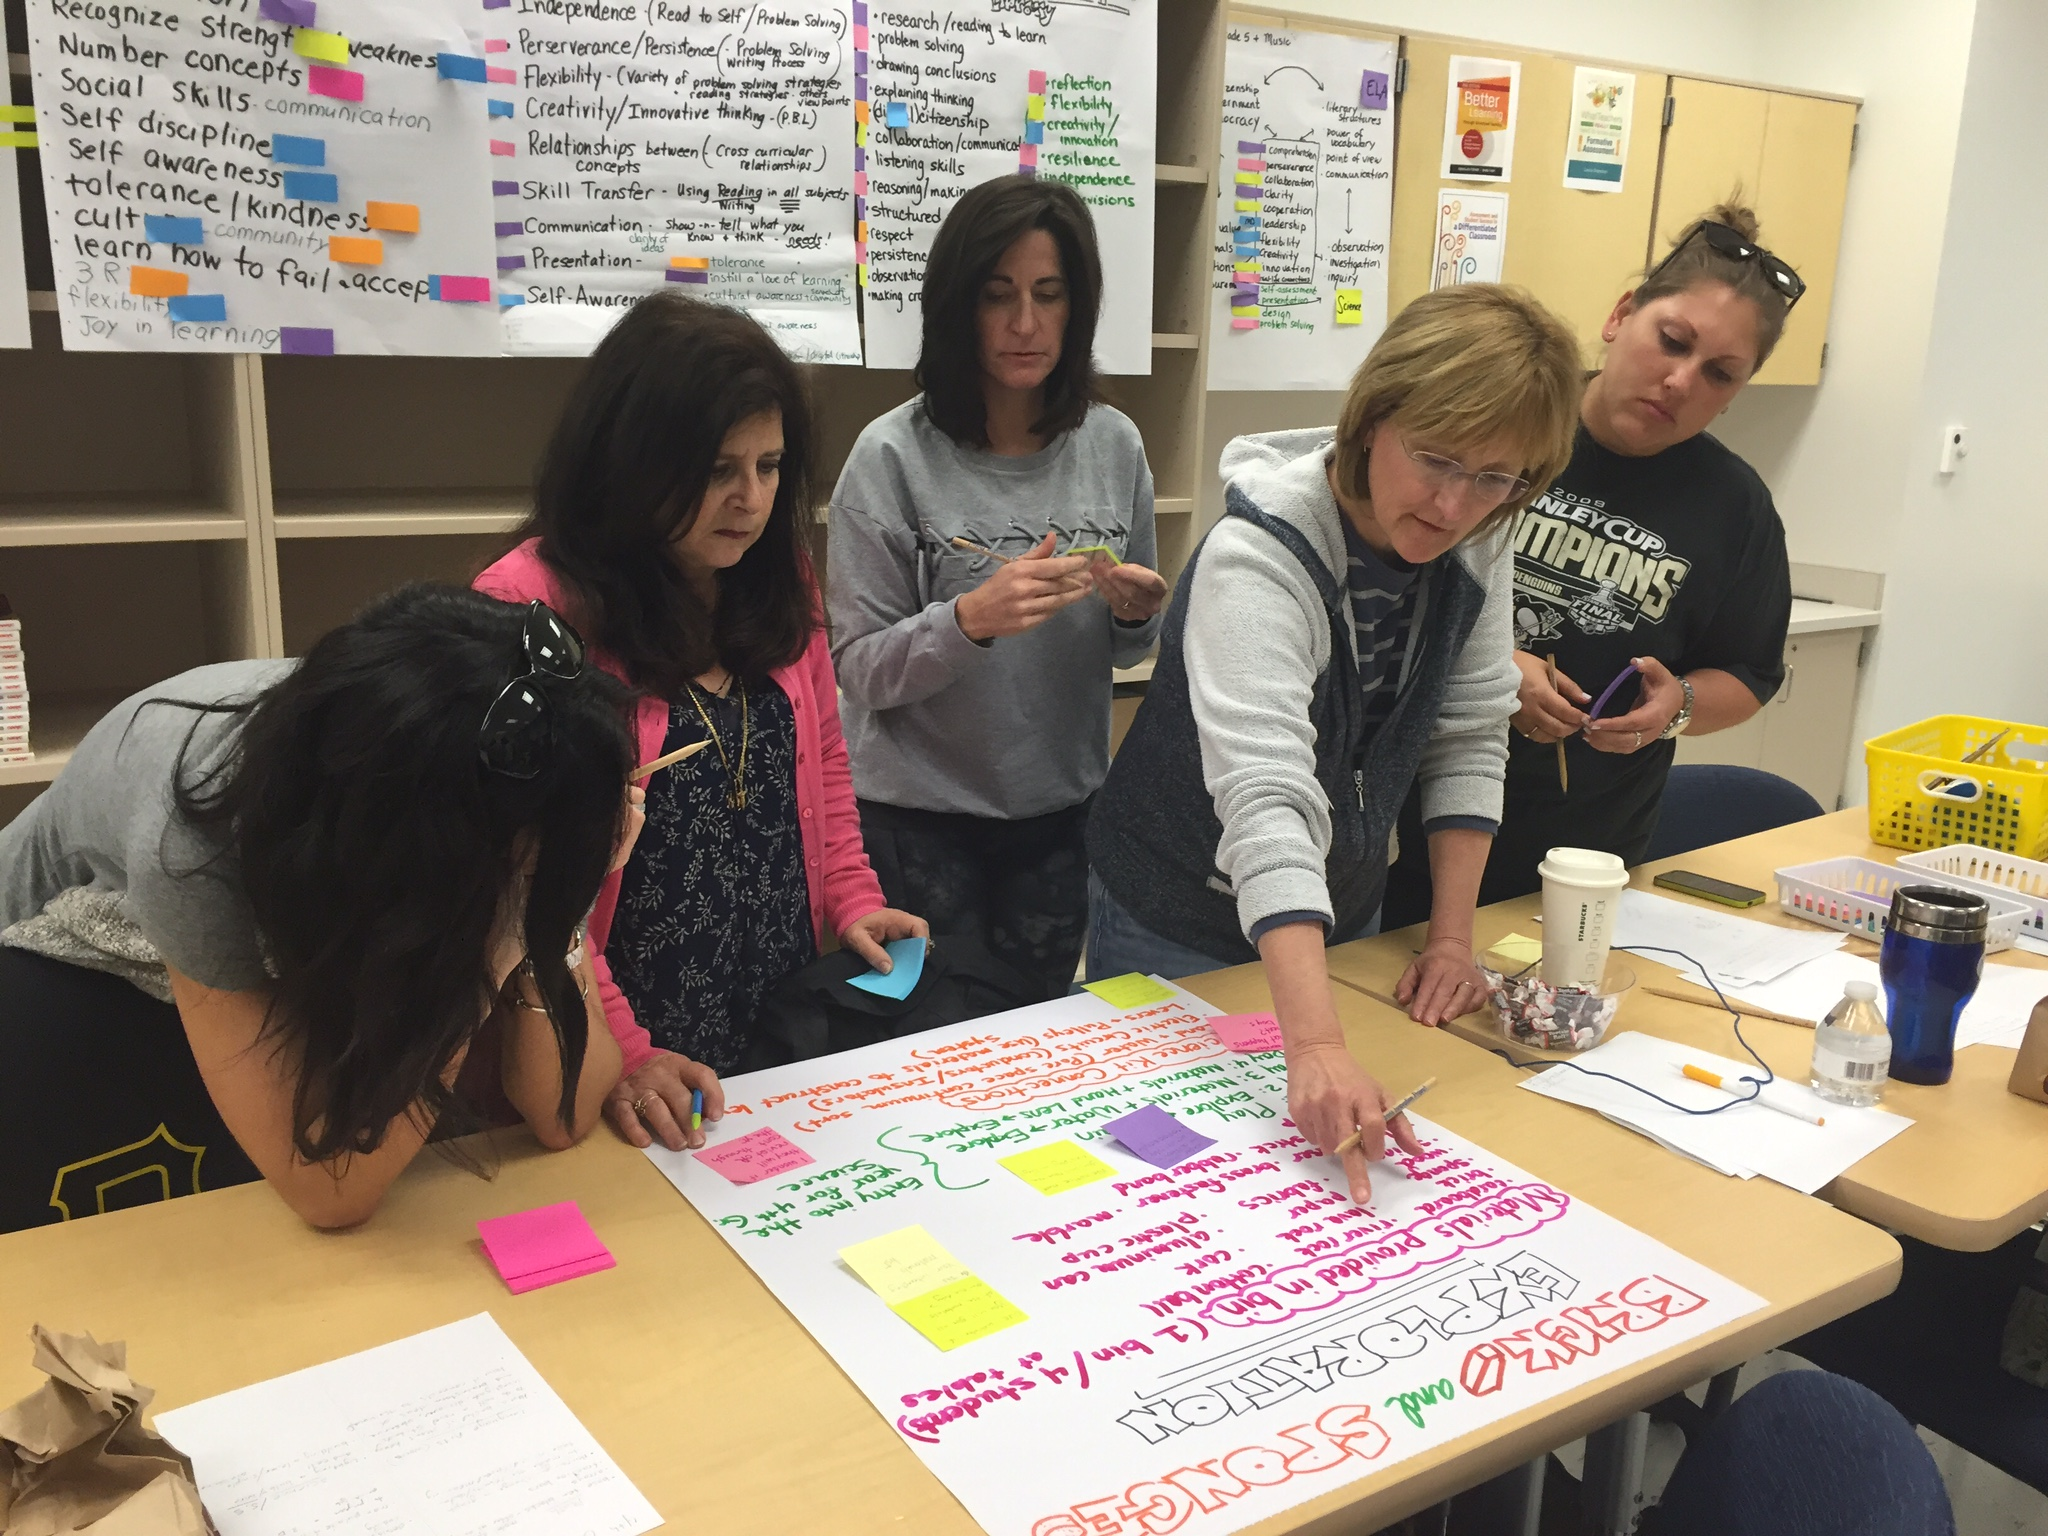 find through-lines and cross-cutting concepts to grow interdisciplinary learning -